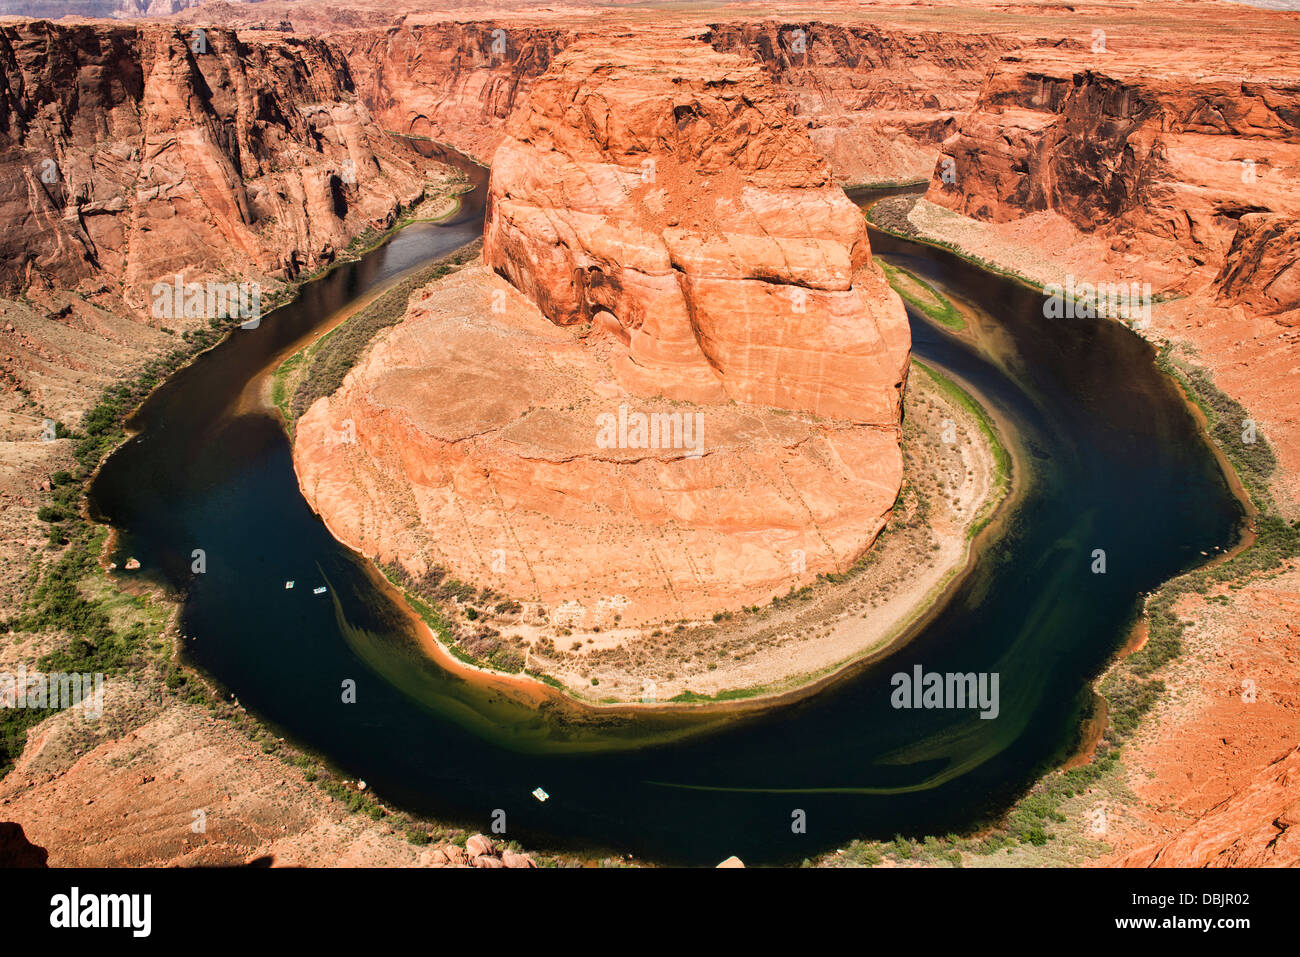 Horseshoe Bend, famous meander of the Colorado River, near Page, Arizona - Stock Image